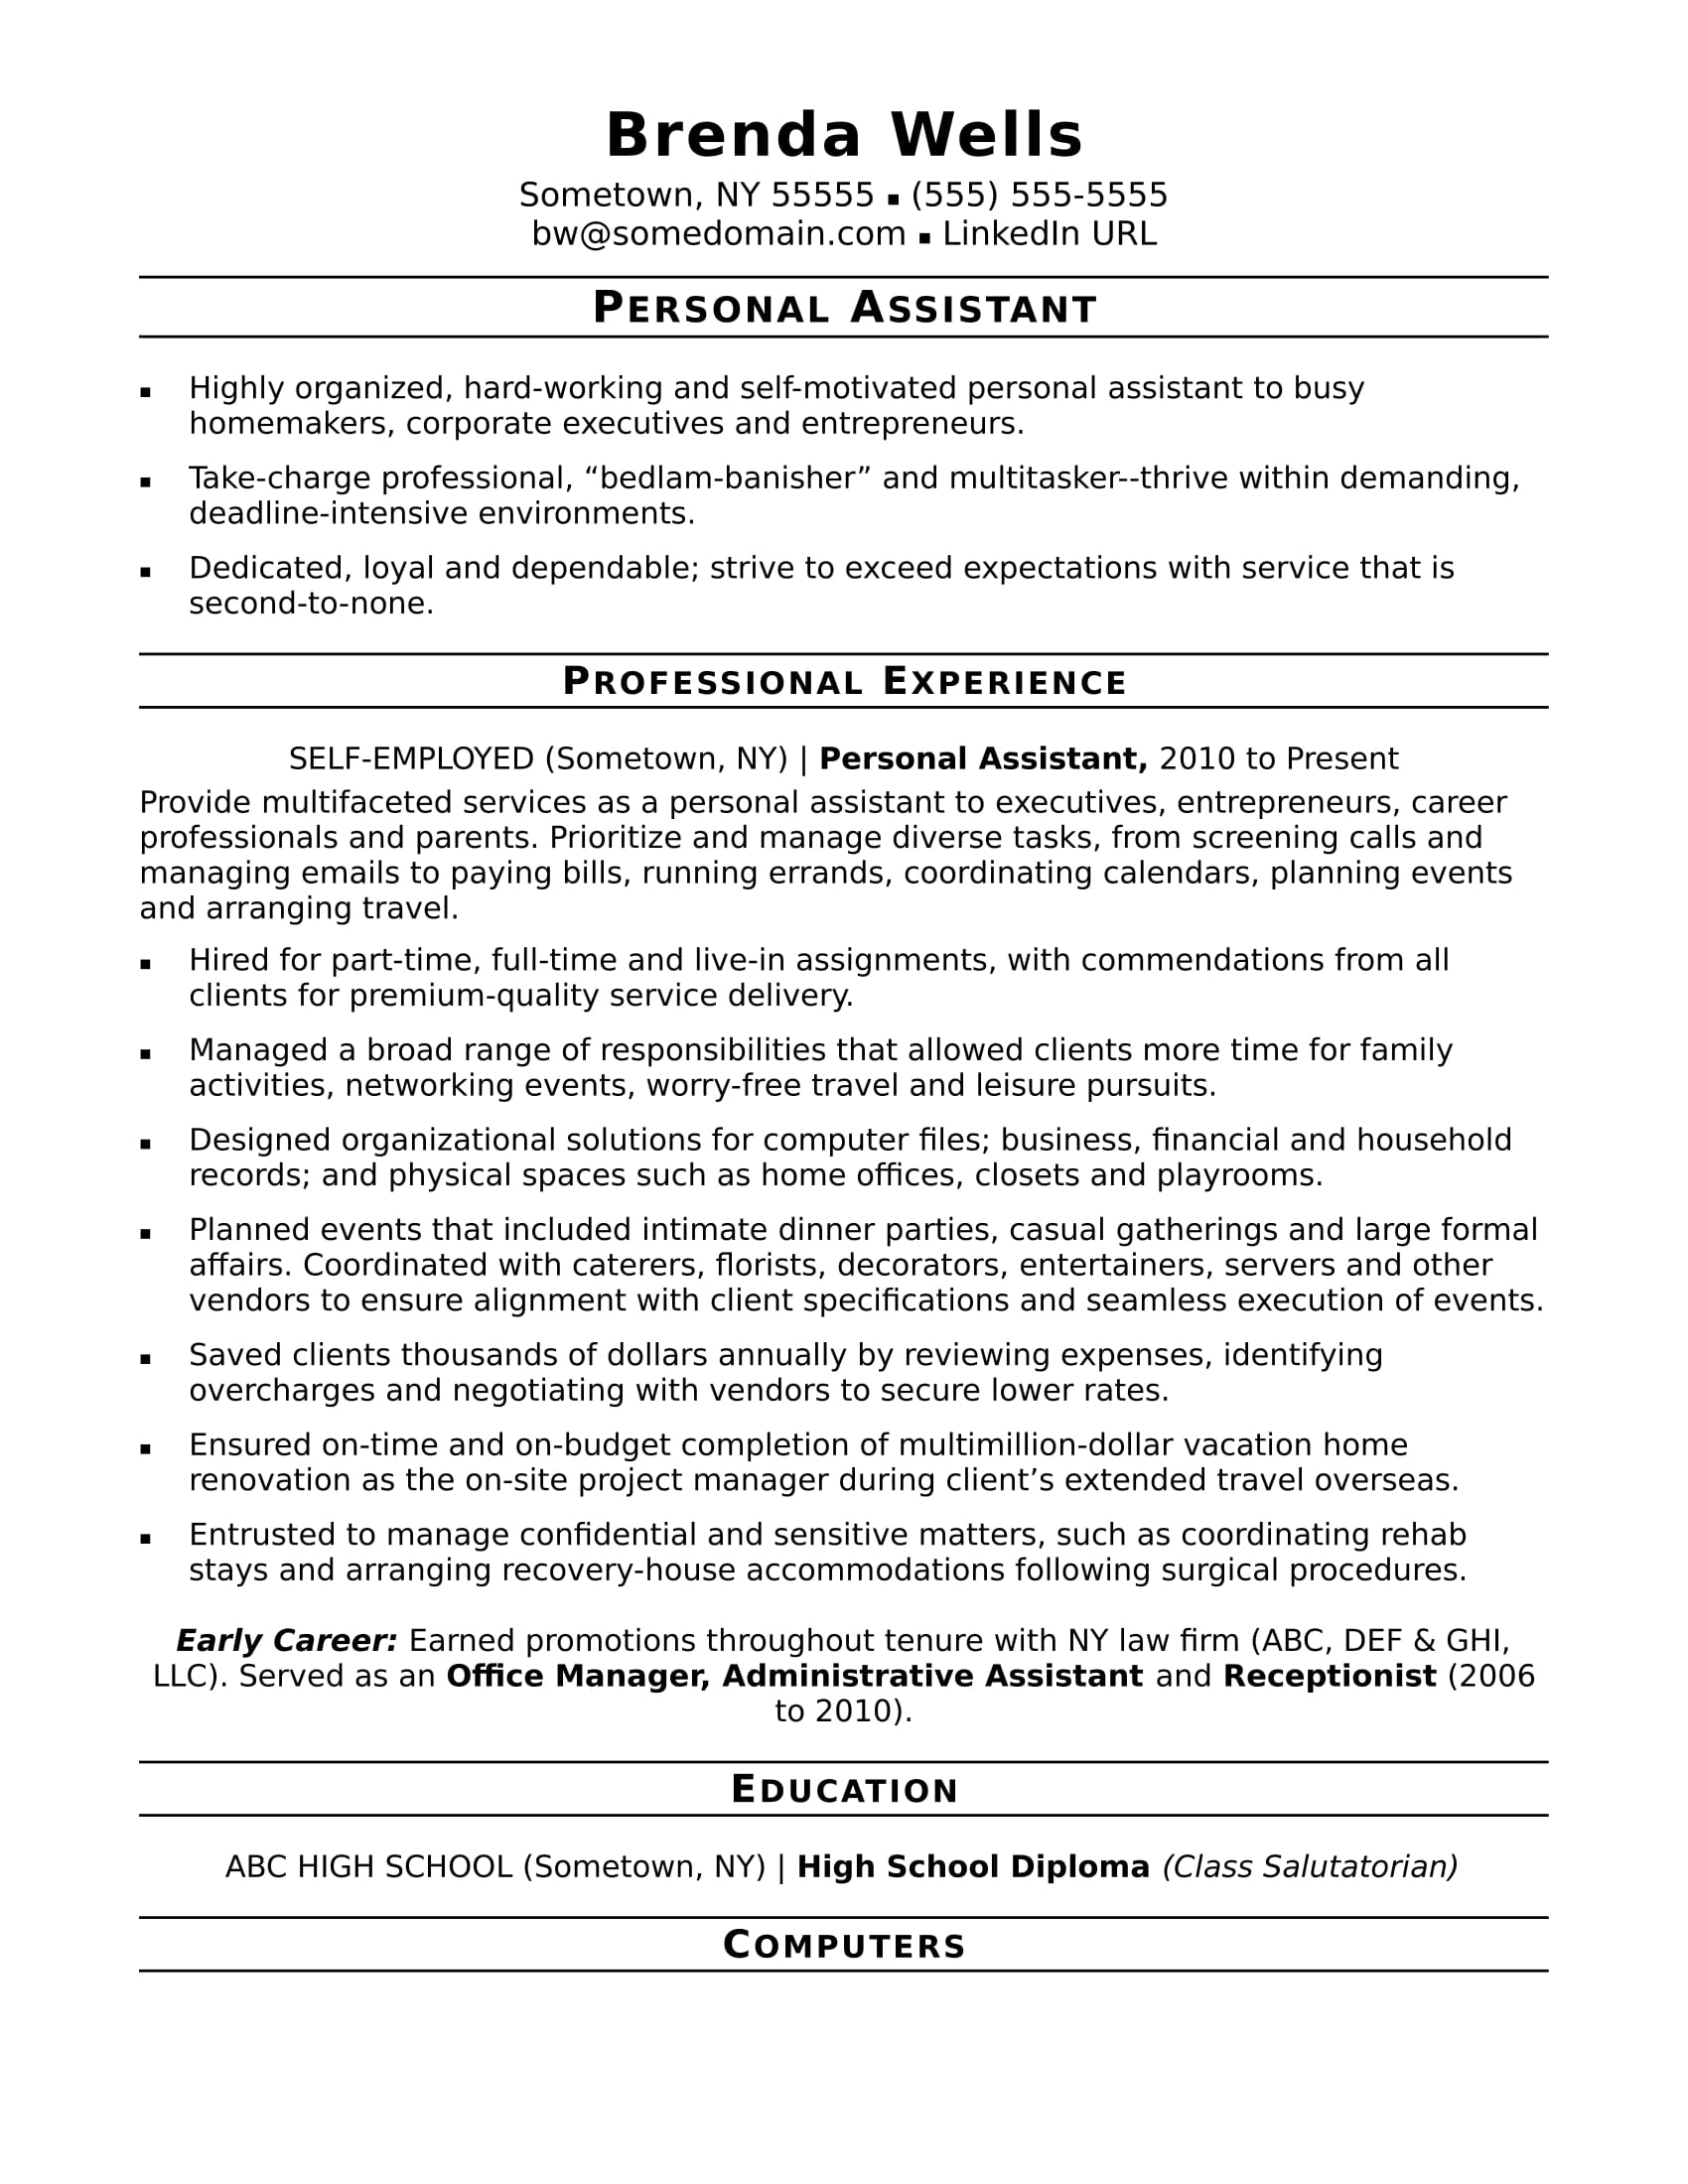 personal assistant resume sample monster skills account manager responsibilities for Resume Personal Assistant Skills Resume